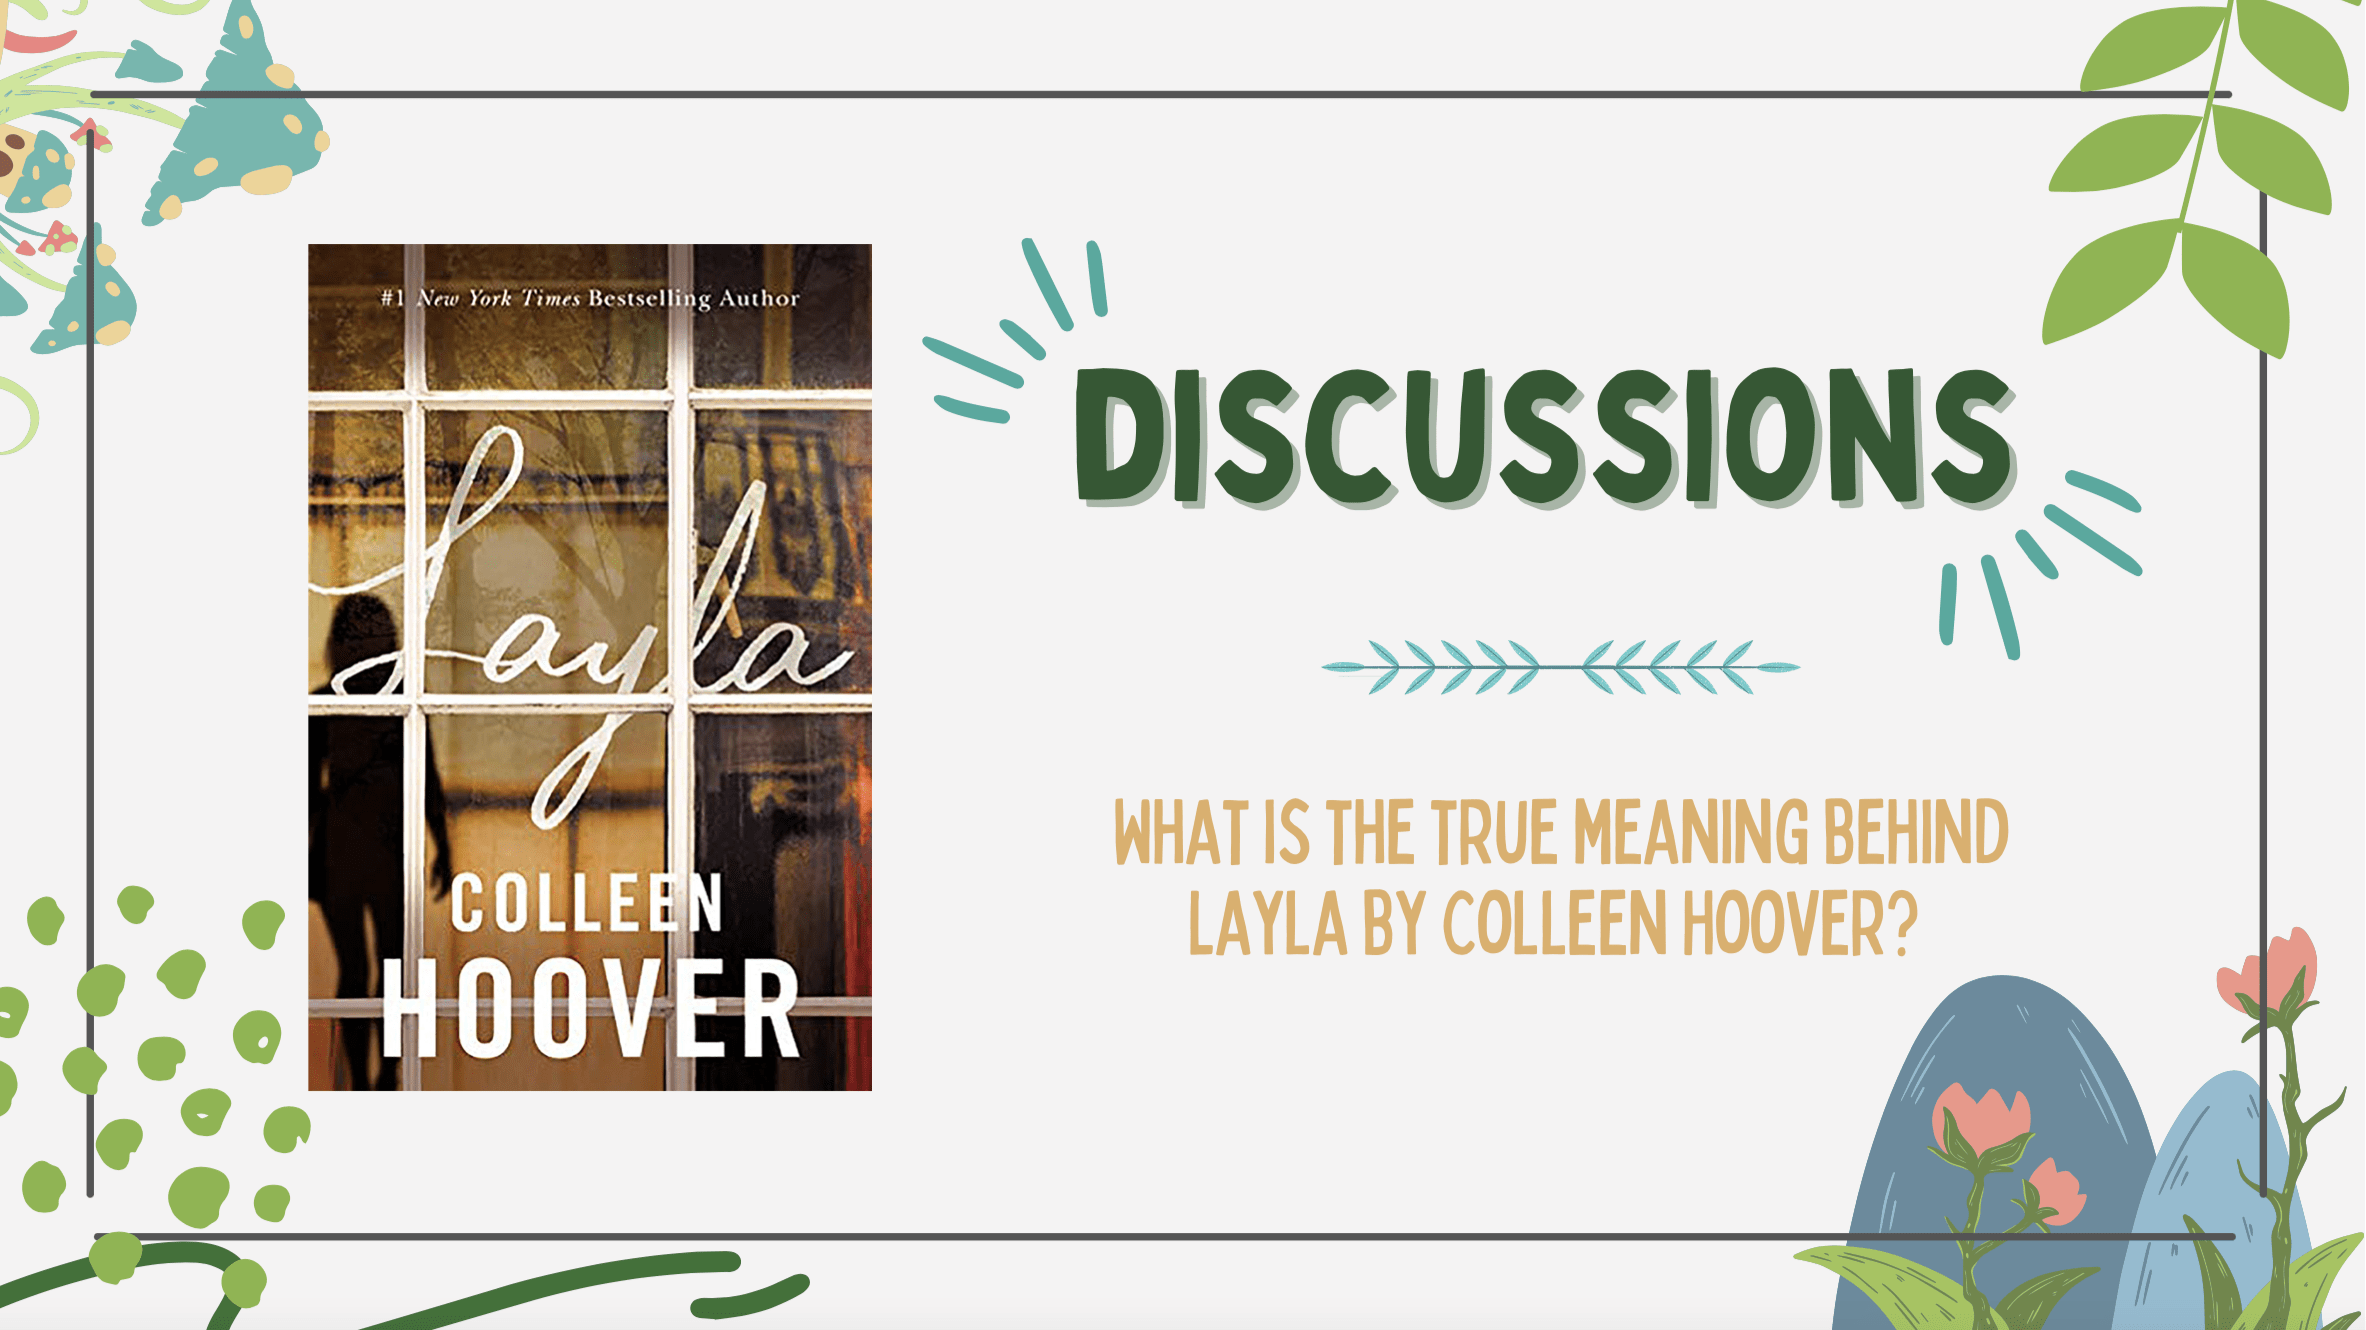 What is the true meaning behind Layla by Colleen Hoover?